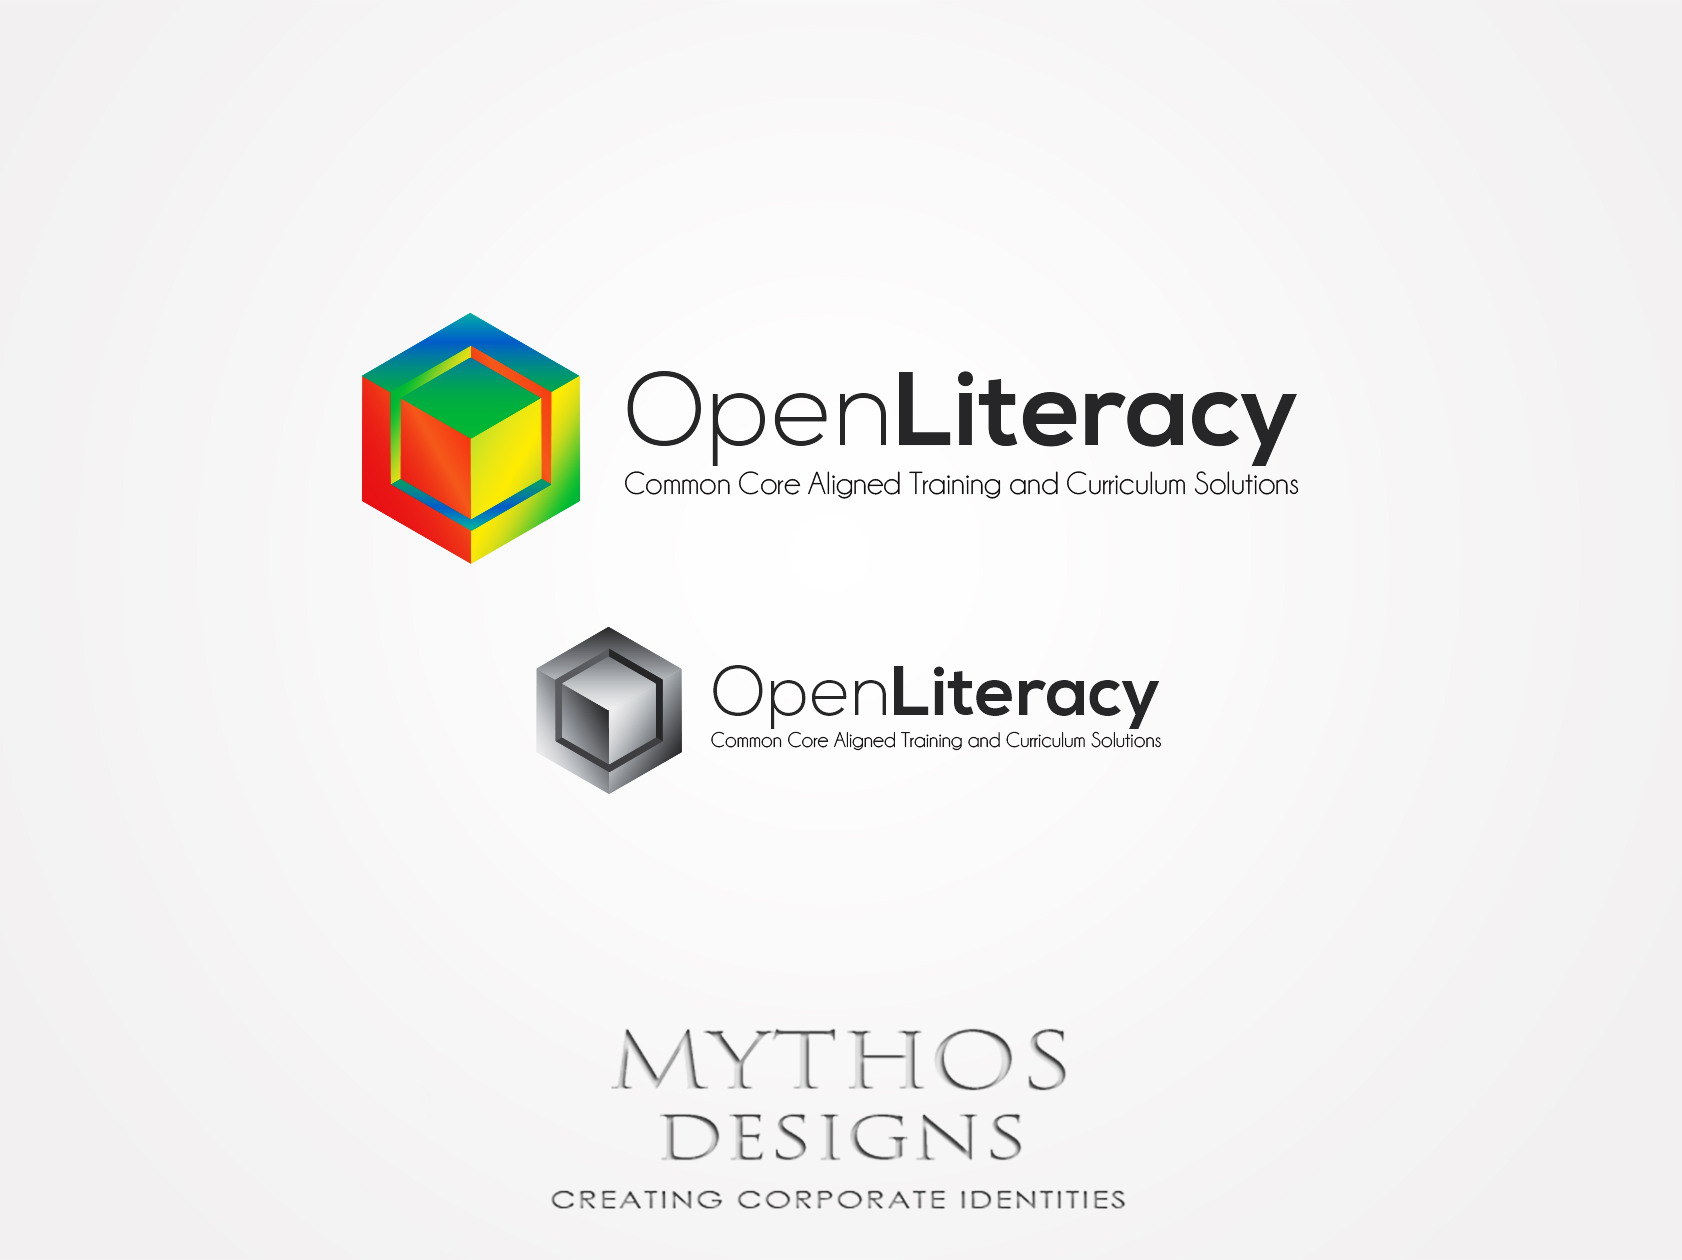 Logo Design by Mythos Designs - Entry No. 96 in the Logo Design Contest Inspiring Logo Design for OpenLiteracy.